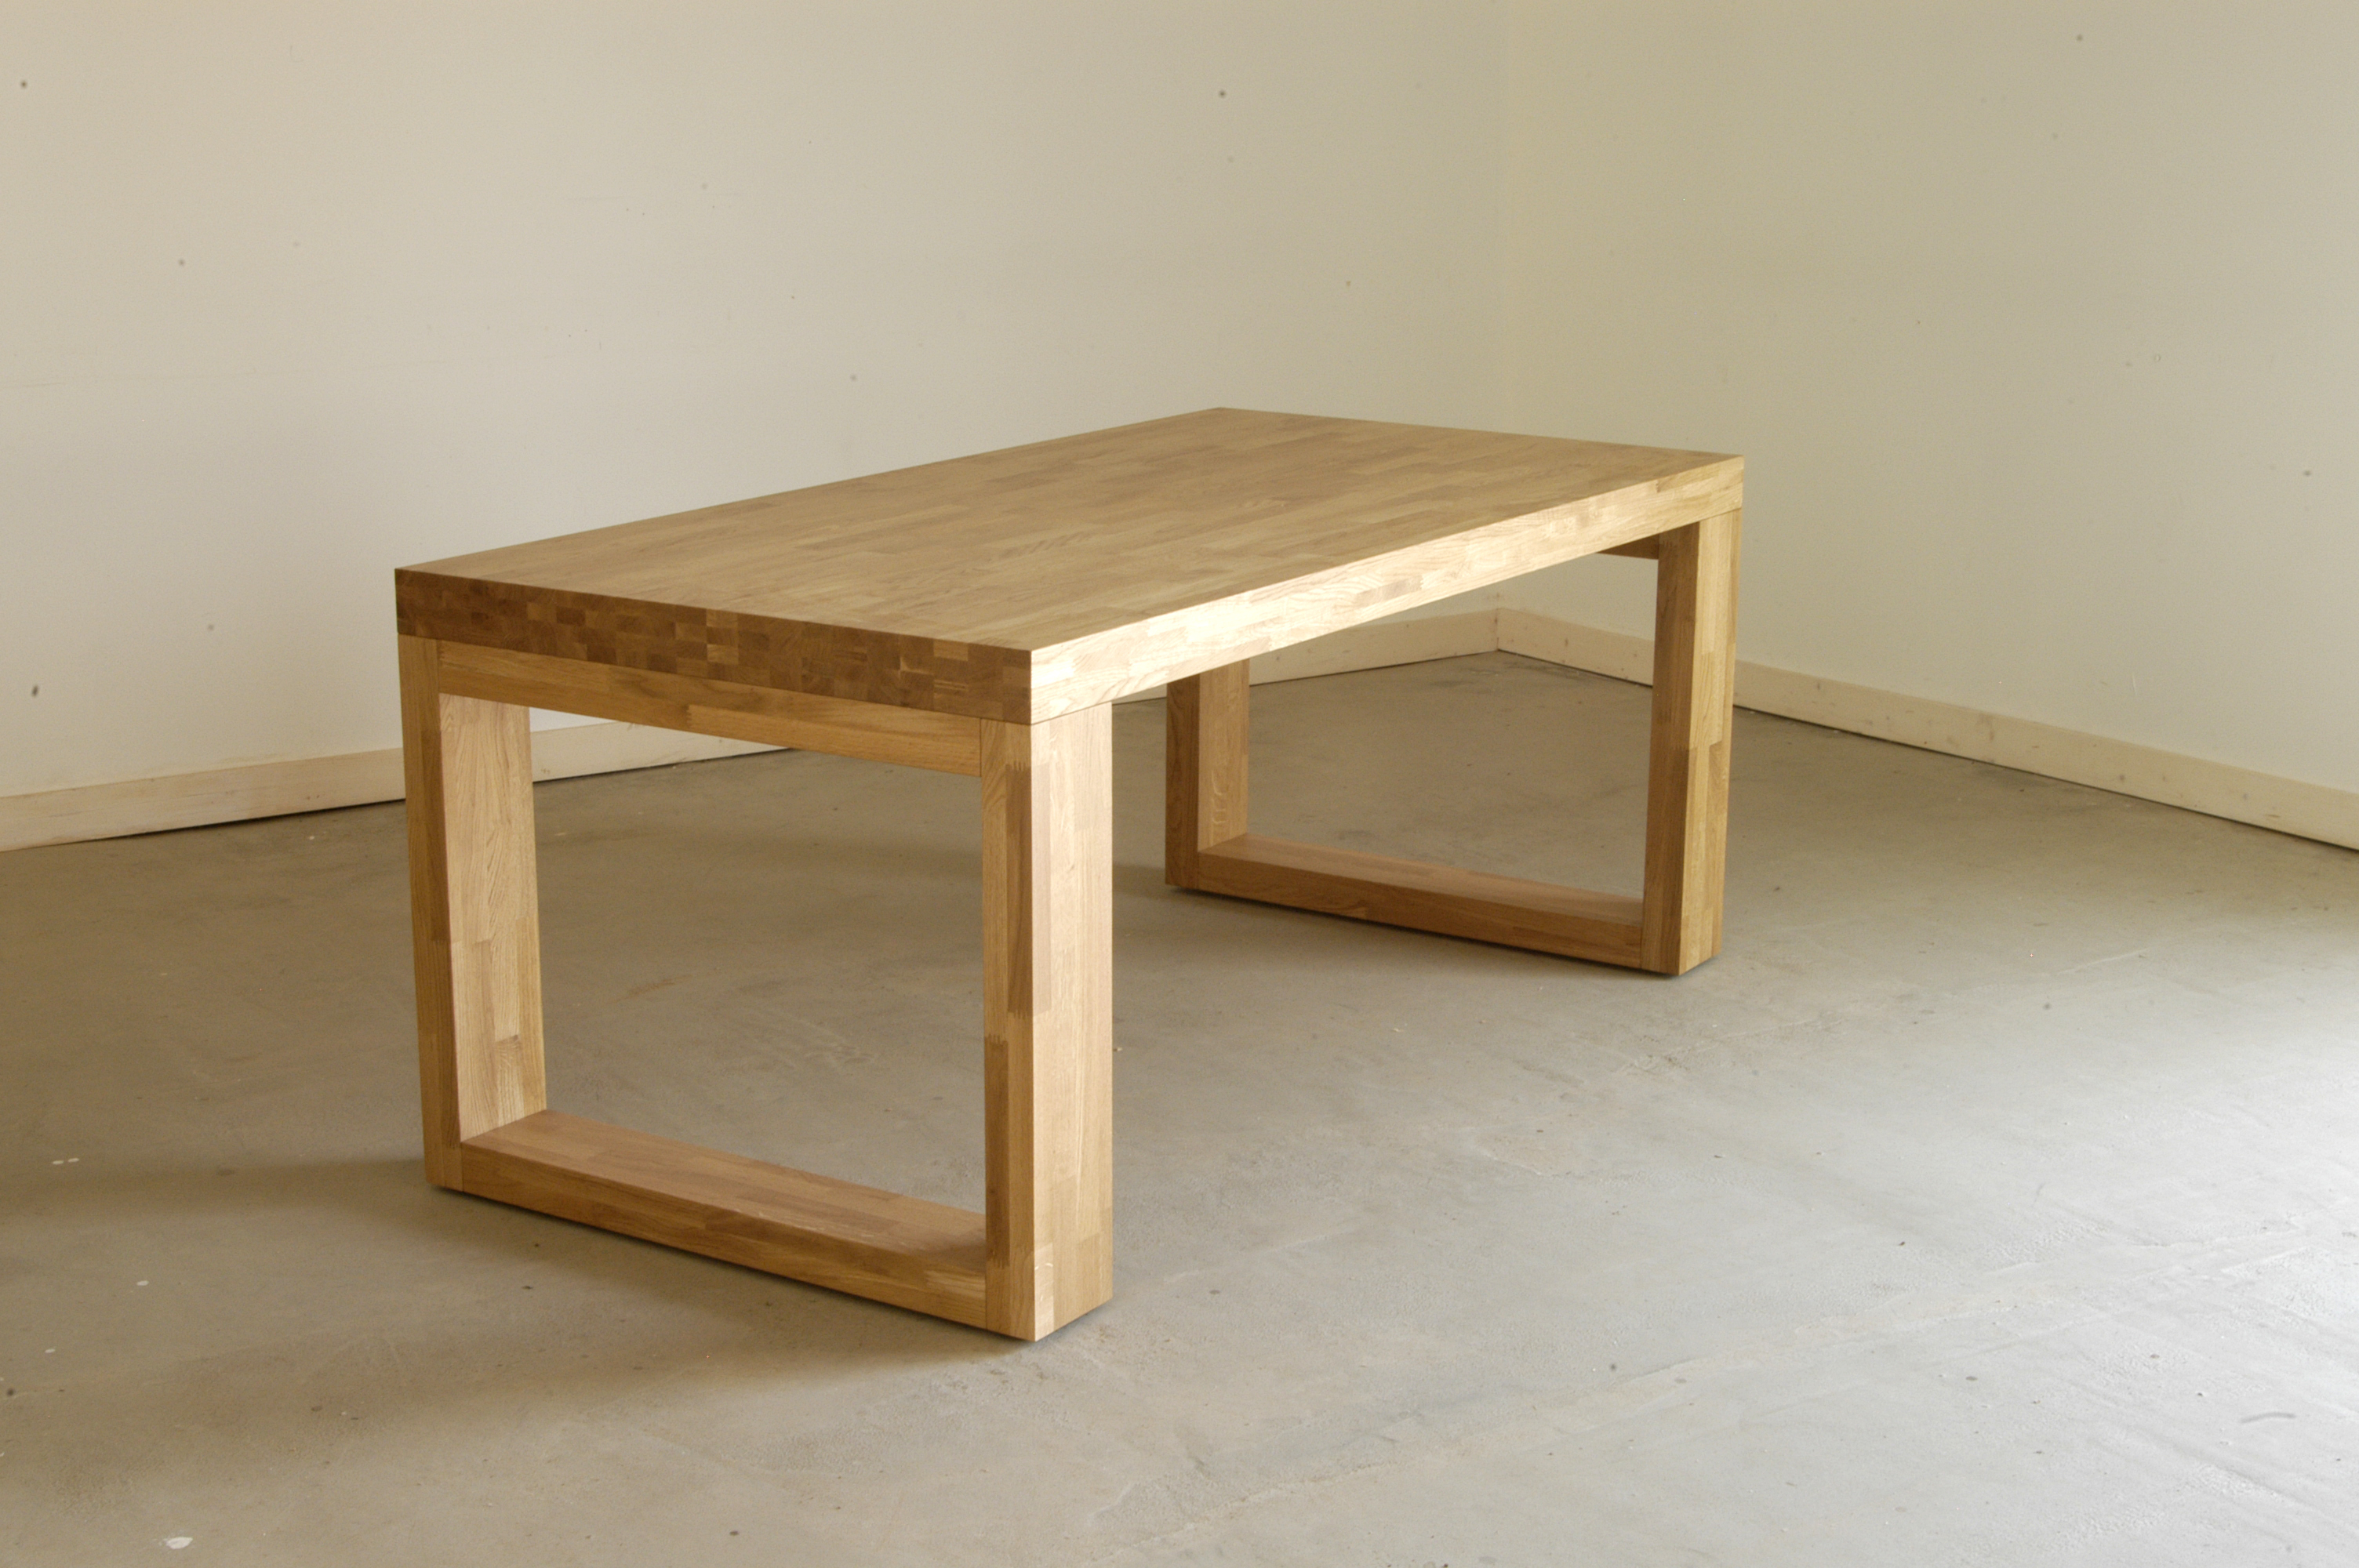 Table bois moderne - Table moderne en bois ...